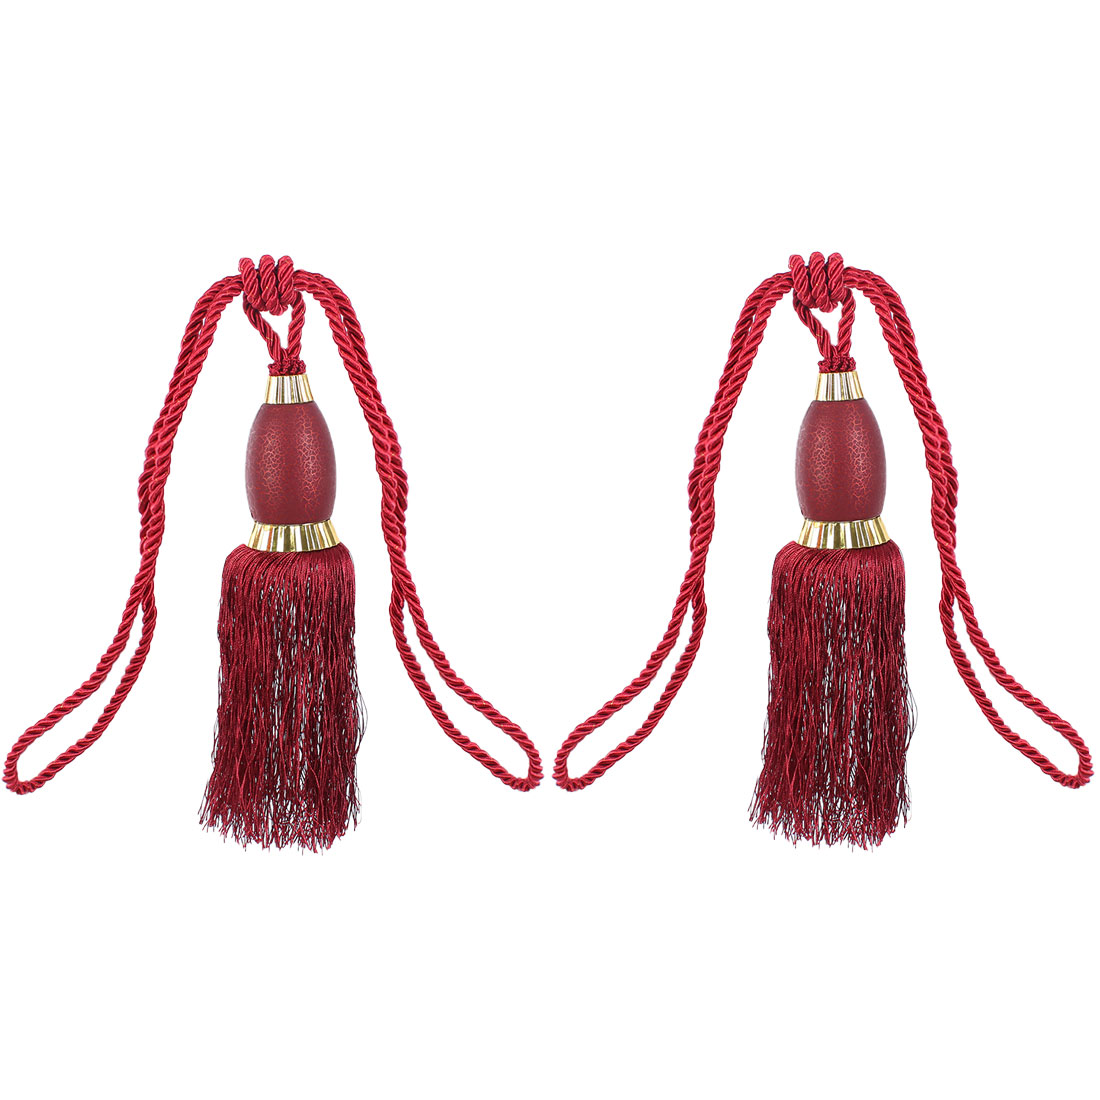 2Pcs Window Curtain Drapery Tassel Rope Tie Back Holdback Fringe Dark Red